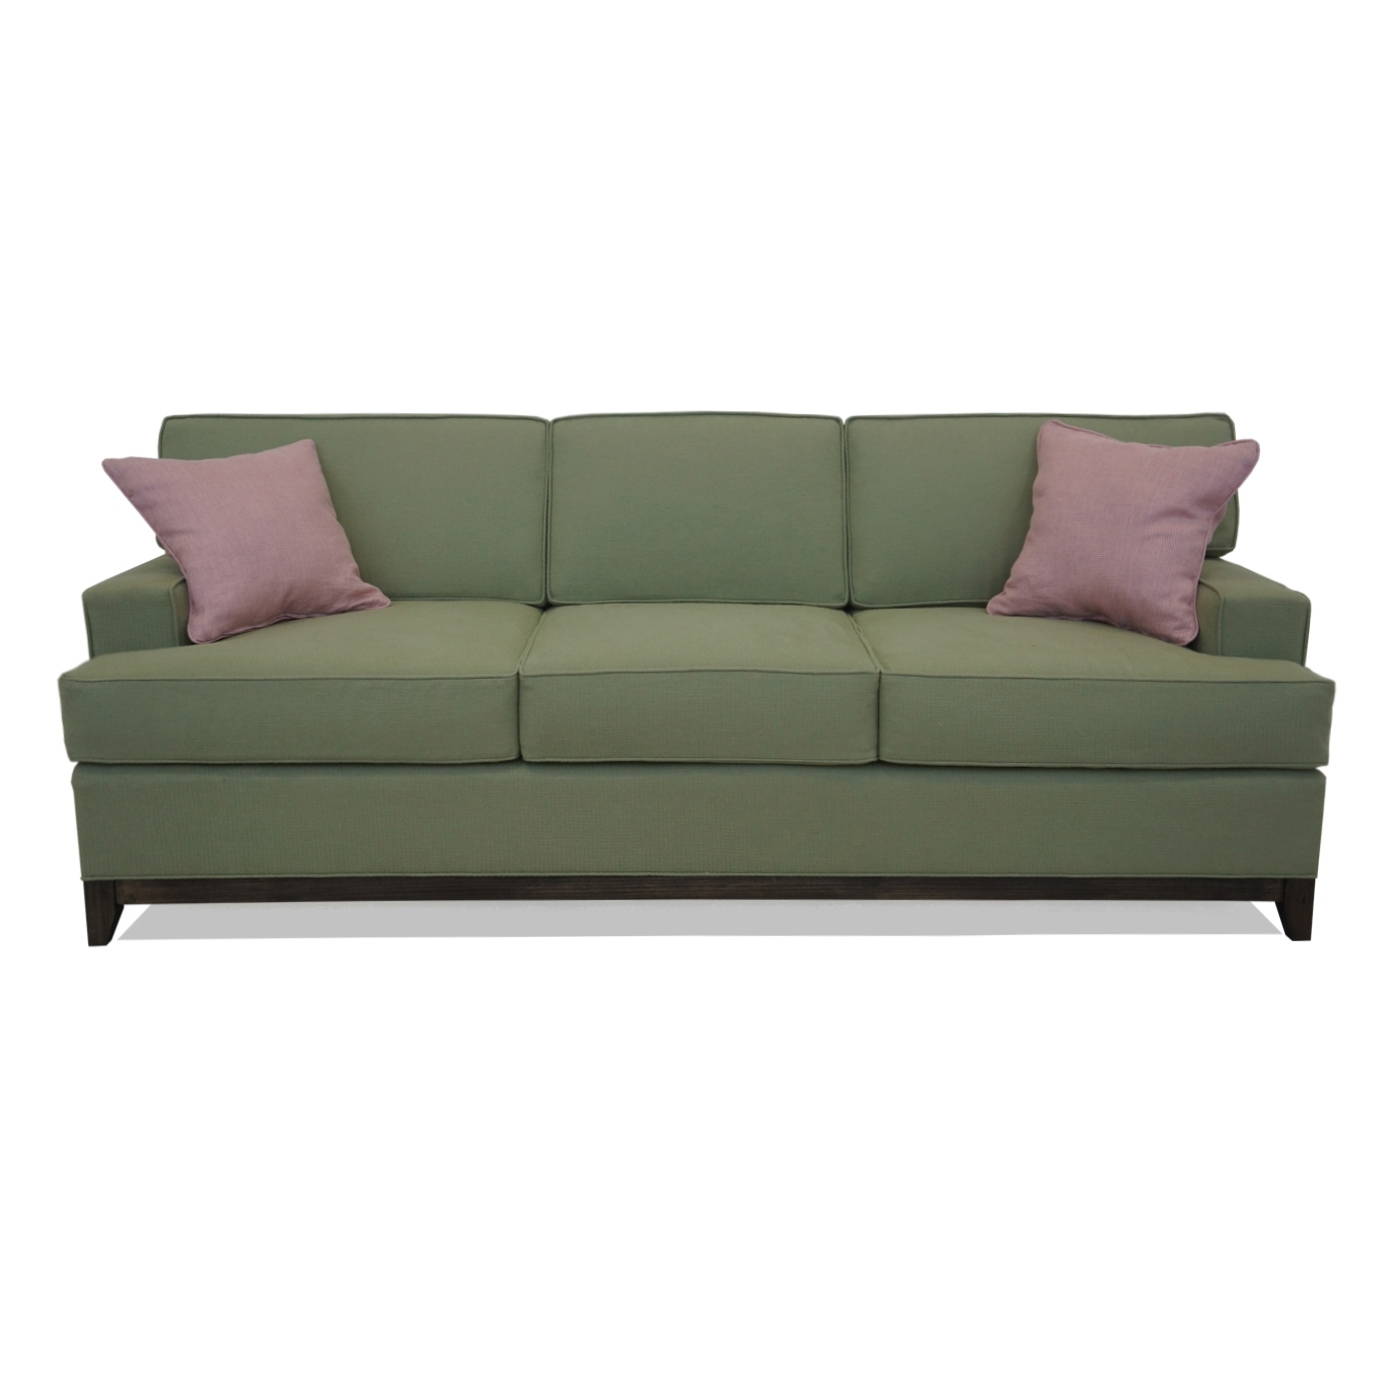 The Best Places To Shop For Eco Friendly Furniture In Well Known Eco Friendly Sectional Sofas (View 17 of 20)